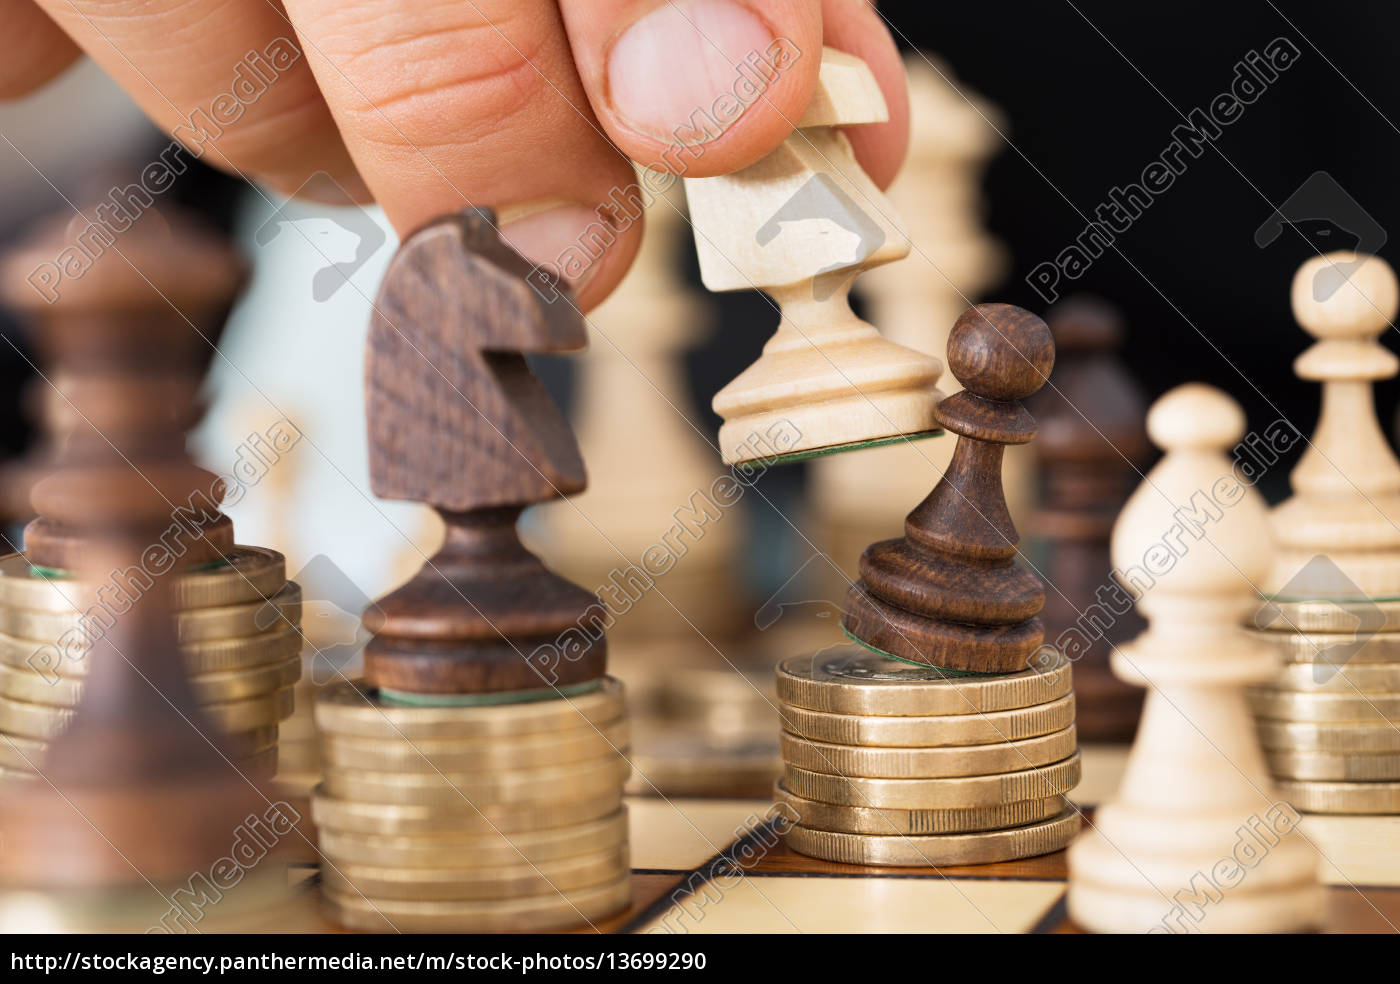 Royalty free image 13699290 - Hand Playing Chess Stacked On Coins